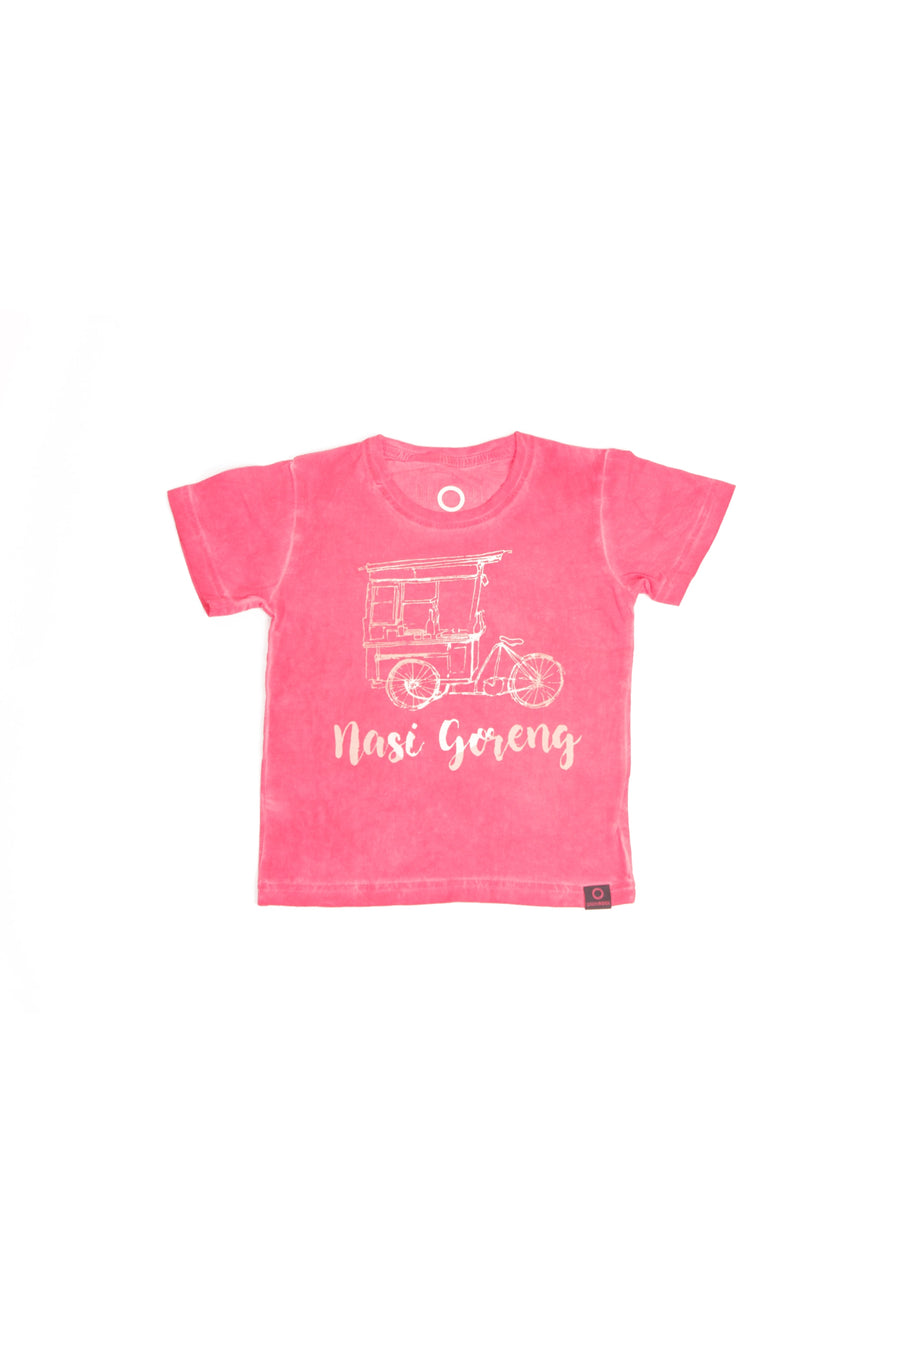 T-Shirt Kids Nasi Goreng Red Wash